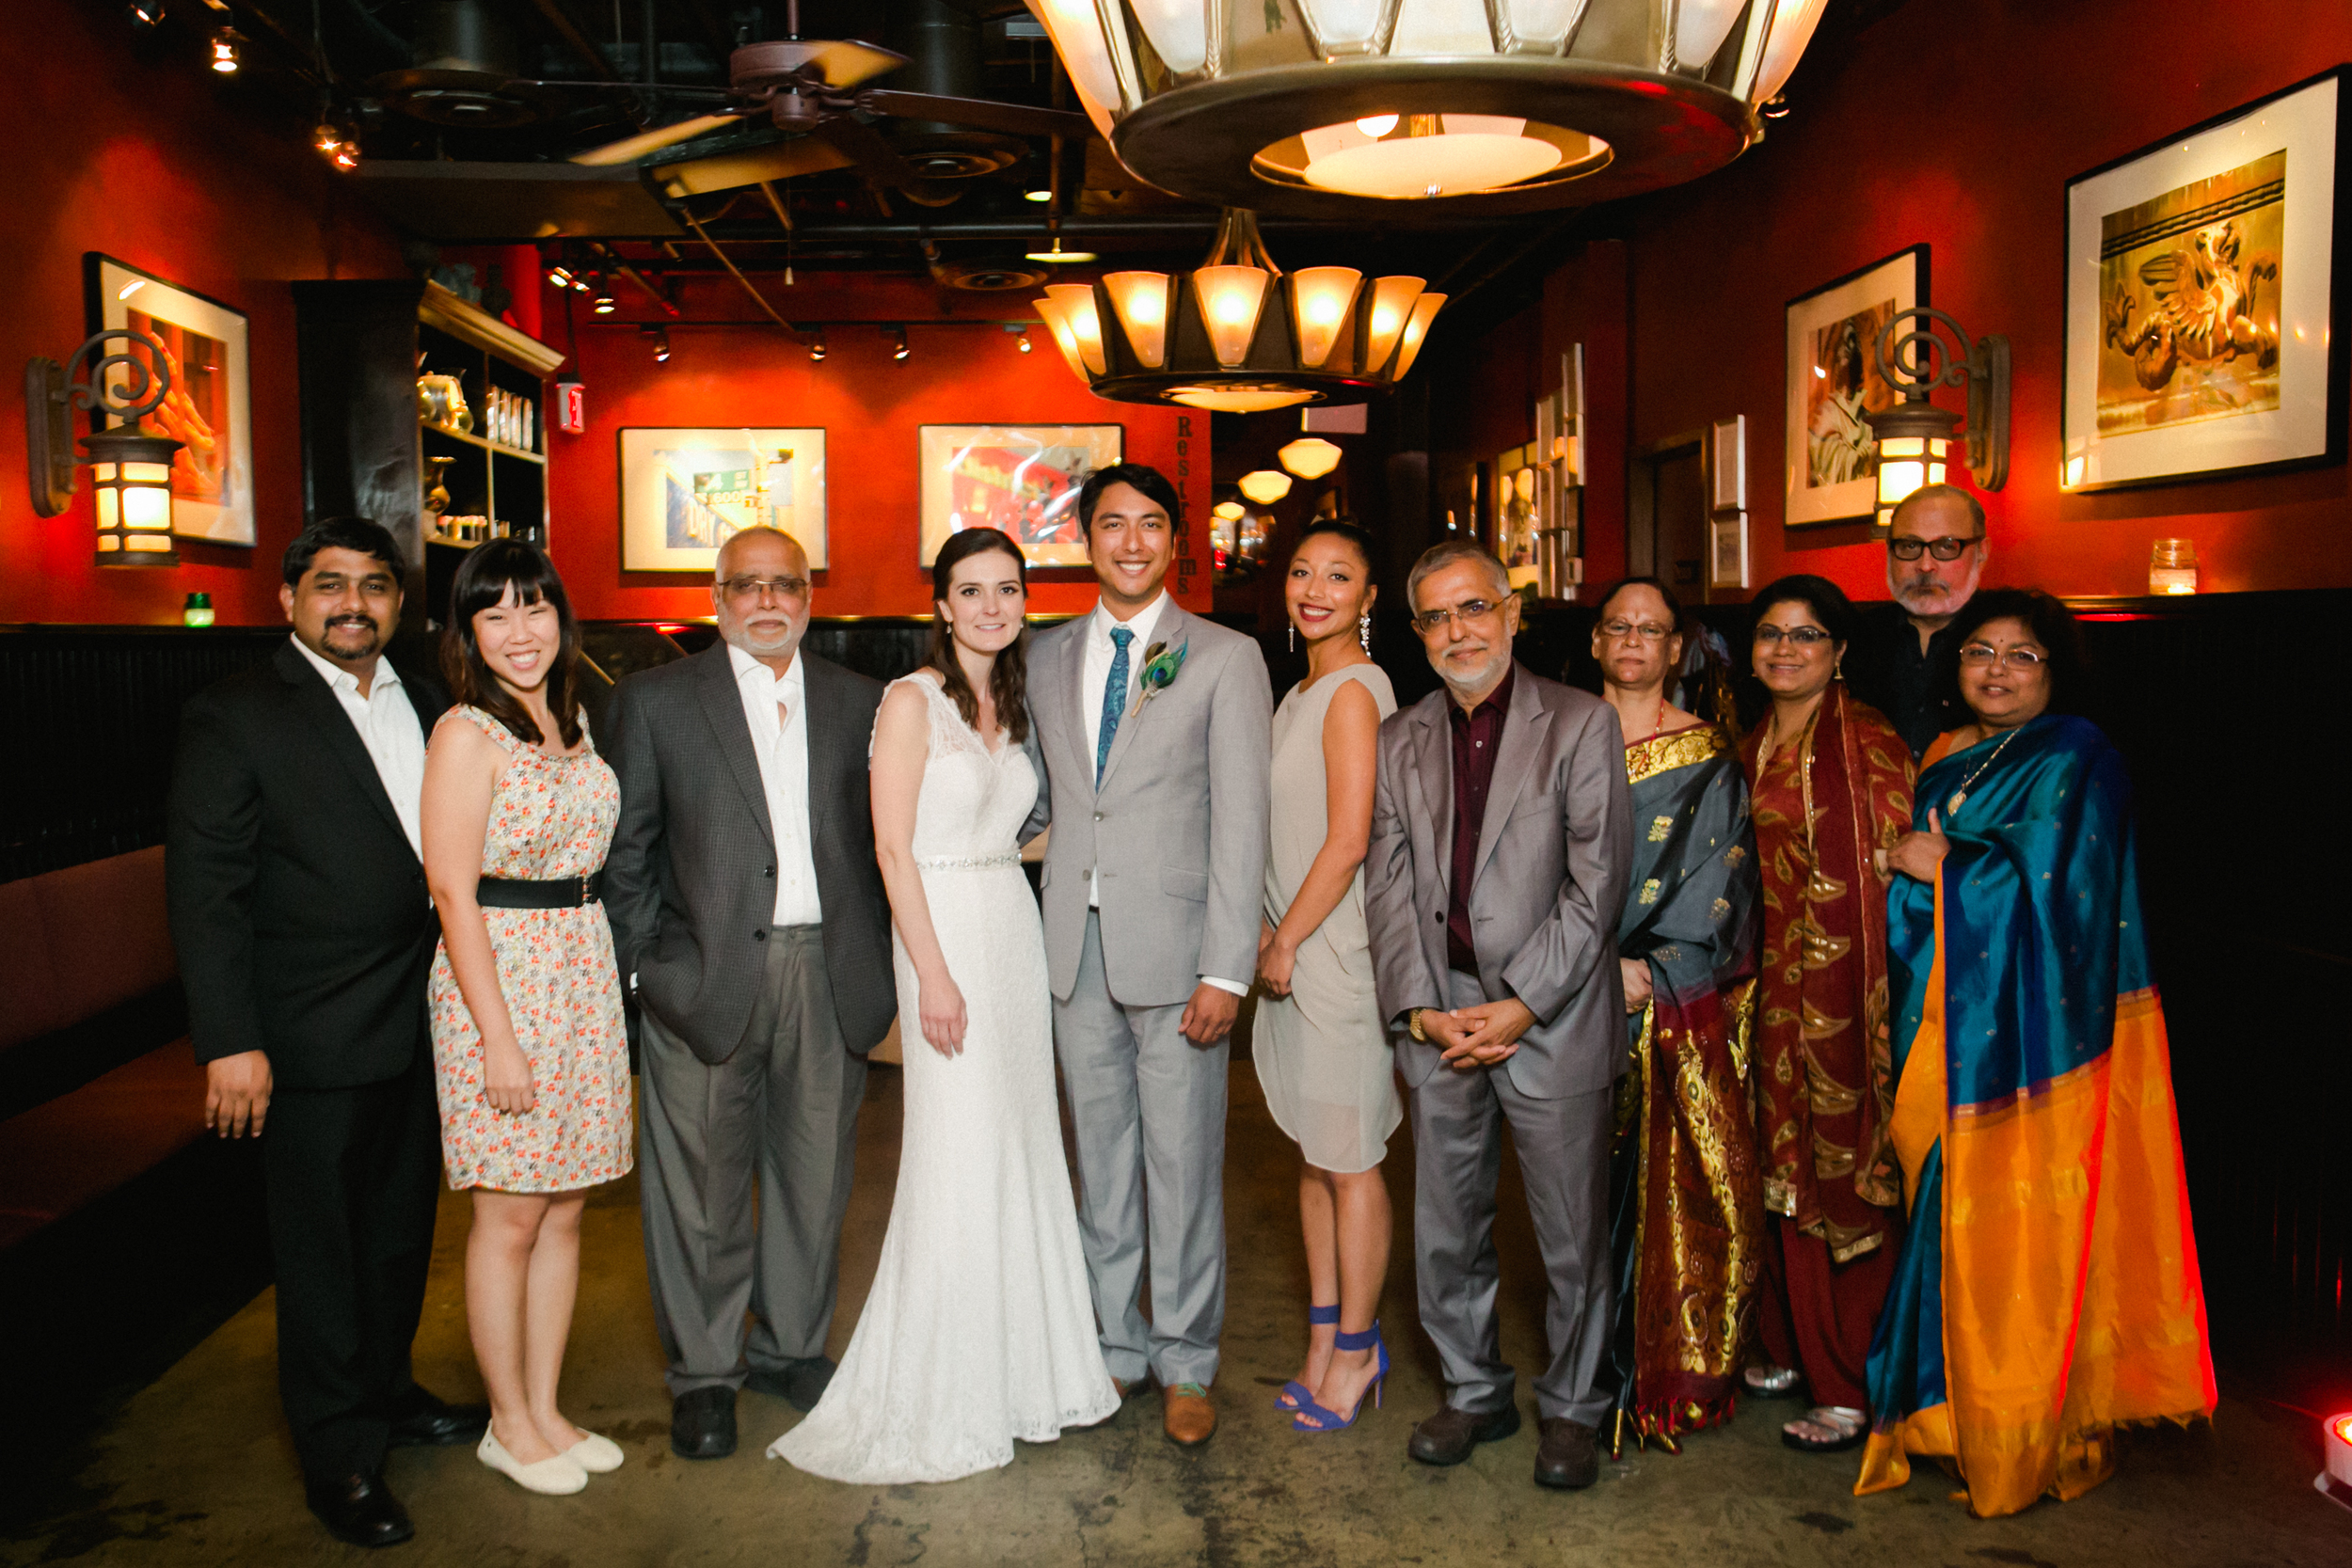 Logans Tavern Weddings_Bart & Dana Wed-212-2.jpg